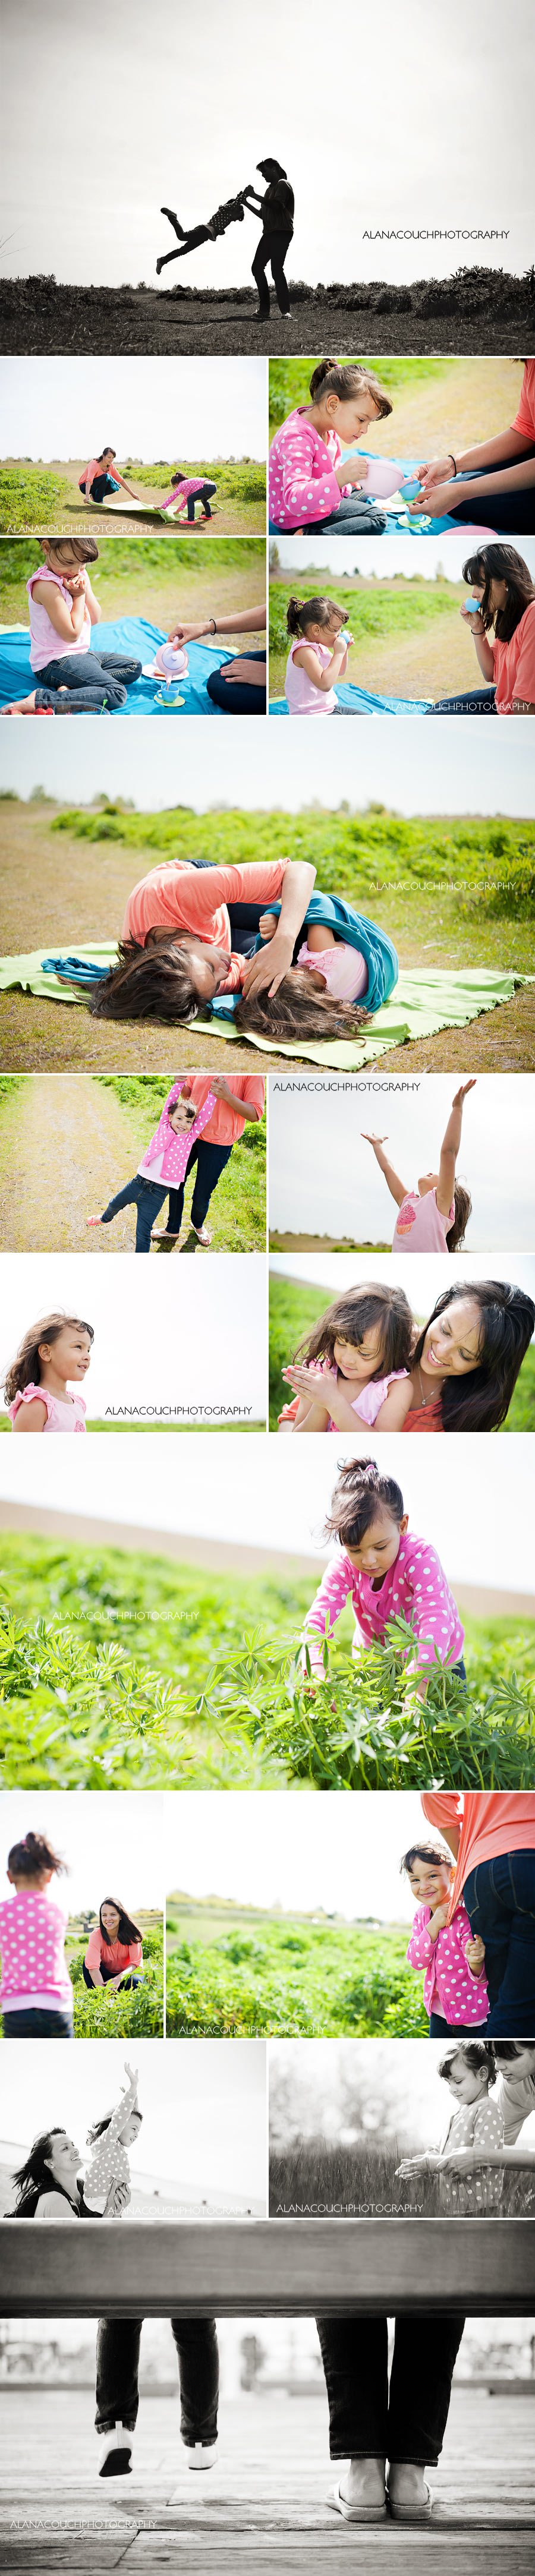 tall-grass-field-richmond-child-girl-photographers